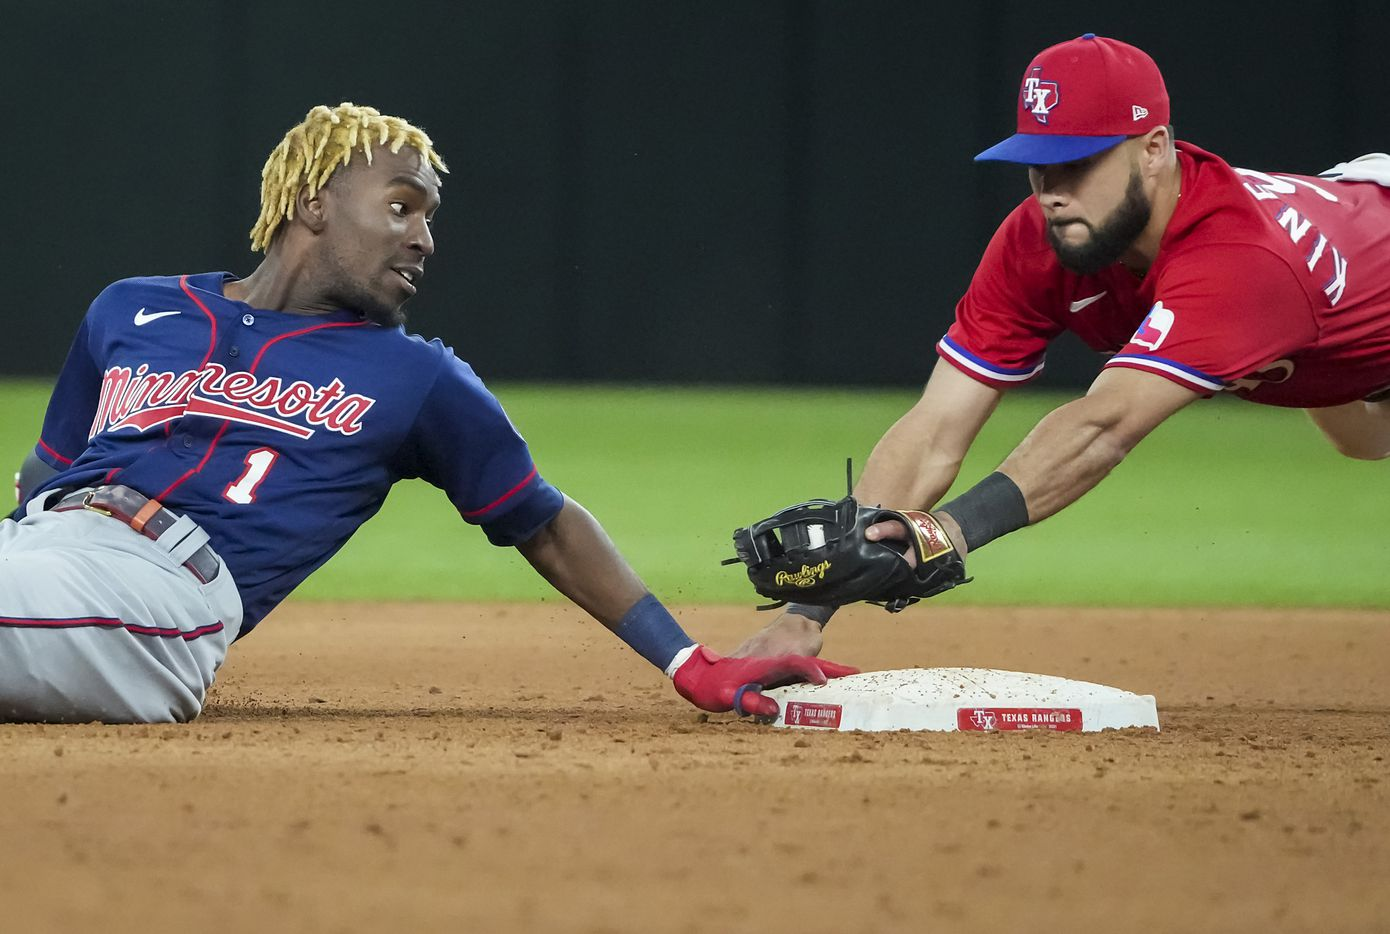 Minnesota Twins center fielder Nick Gordon is safe at second base with a double ahead of the tag from Texas Rangers shortstop Isiah Kiner-Falefa during the ninth inning at Globe Life Field on Friday, June 18, 2021.